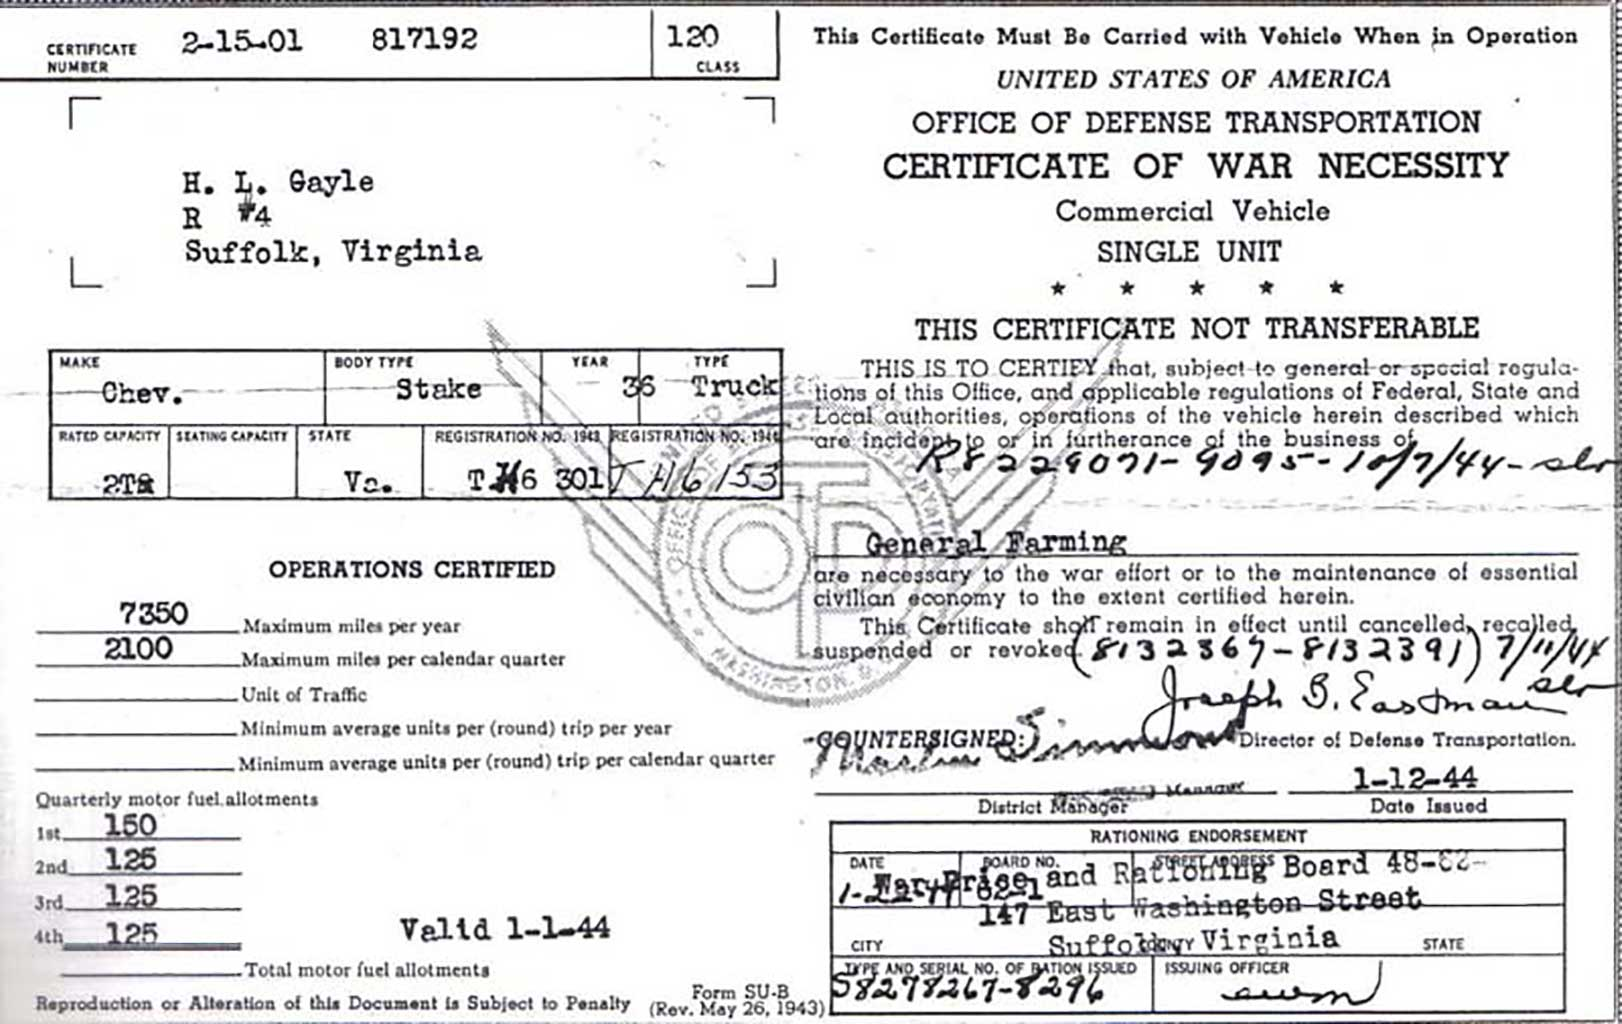 certificate-of-war-necessity-for-commercial-vehicle-h-l-gayle-dec-1942-vernon-gayle-document